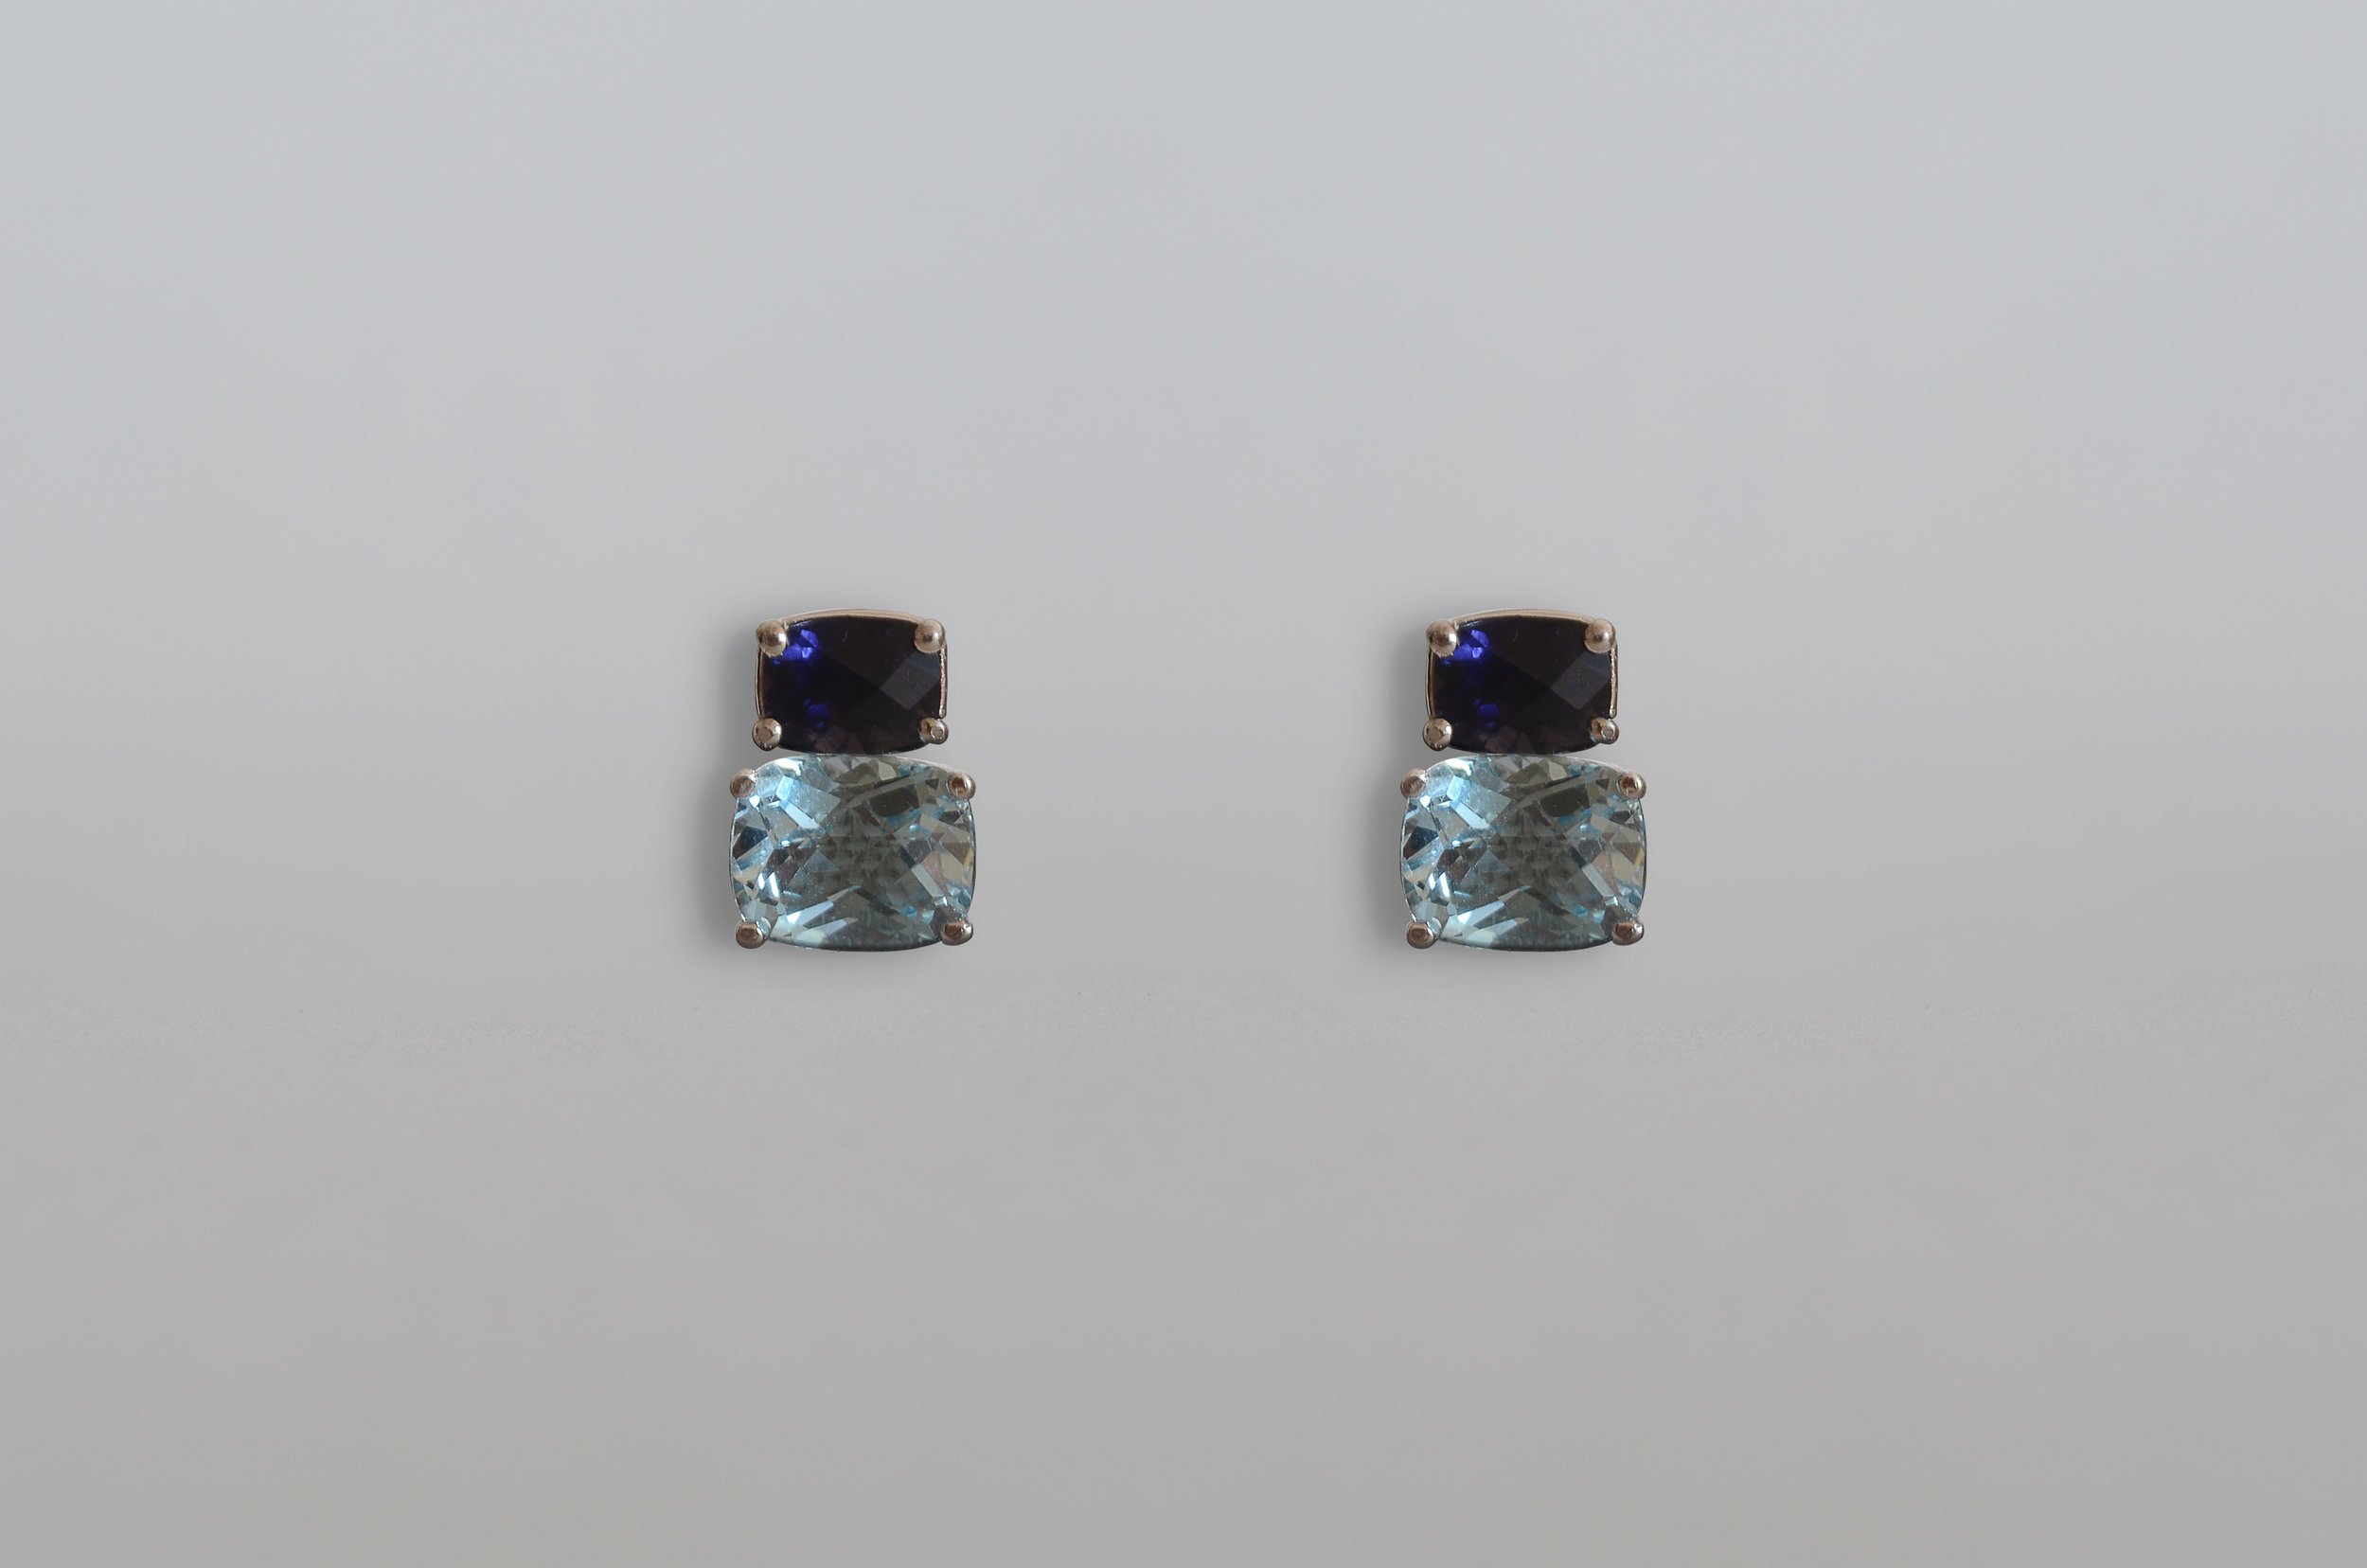 Cushion Cut Iolite and Blue Topaz Earring set in 14kt White Gold